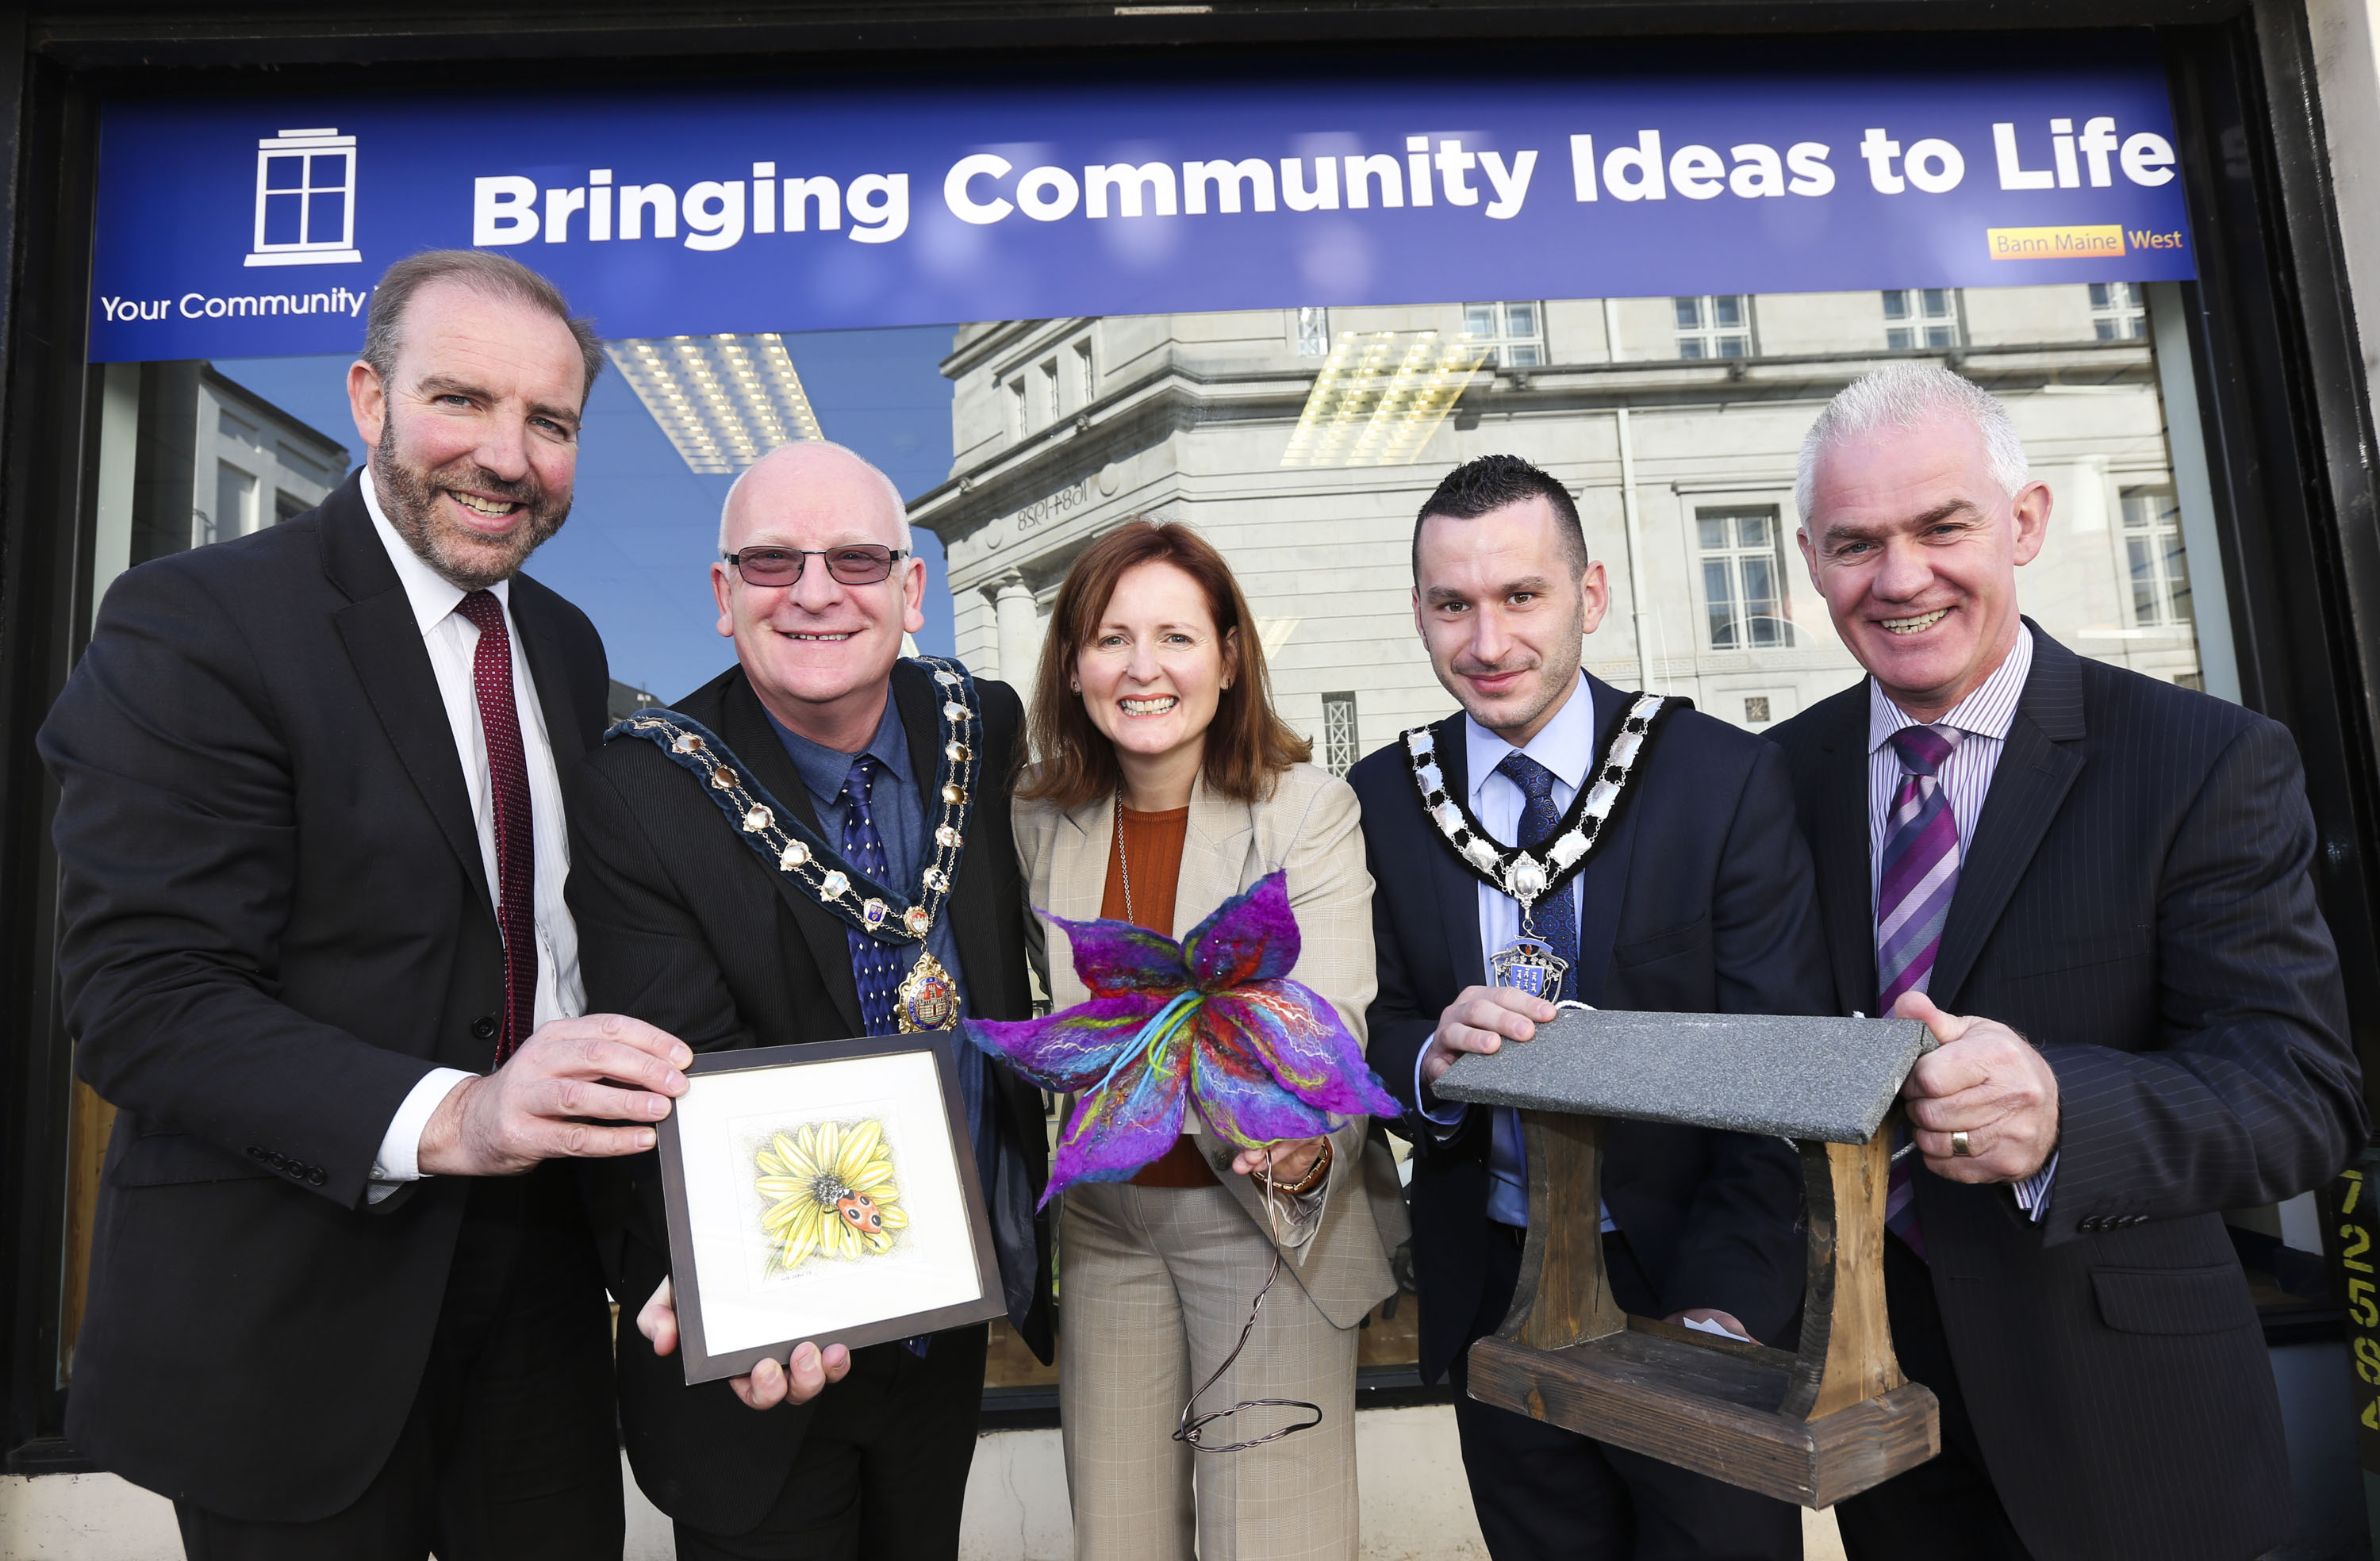 Opening the Window to Community Enterprise